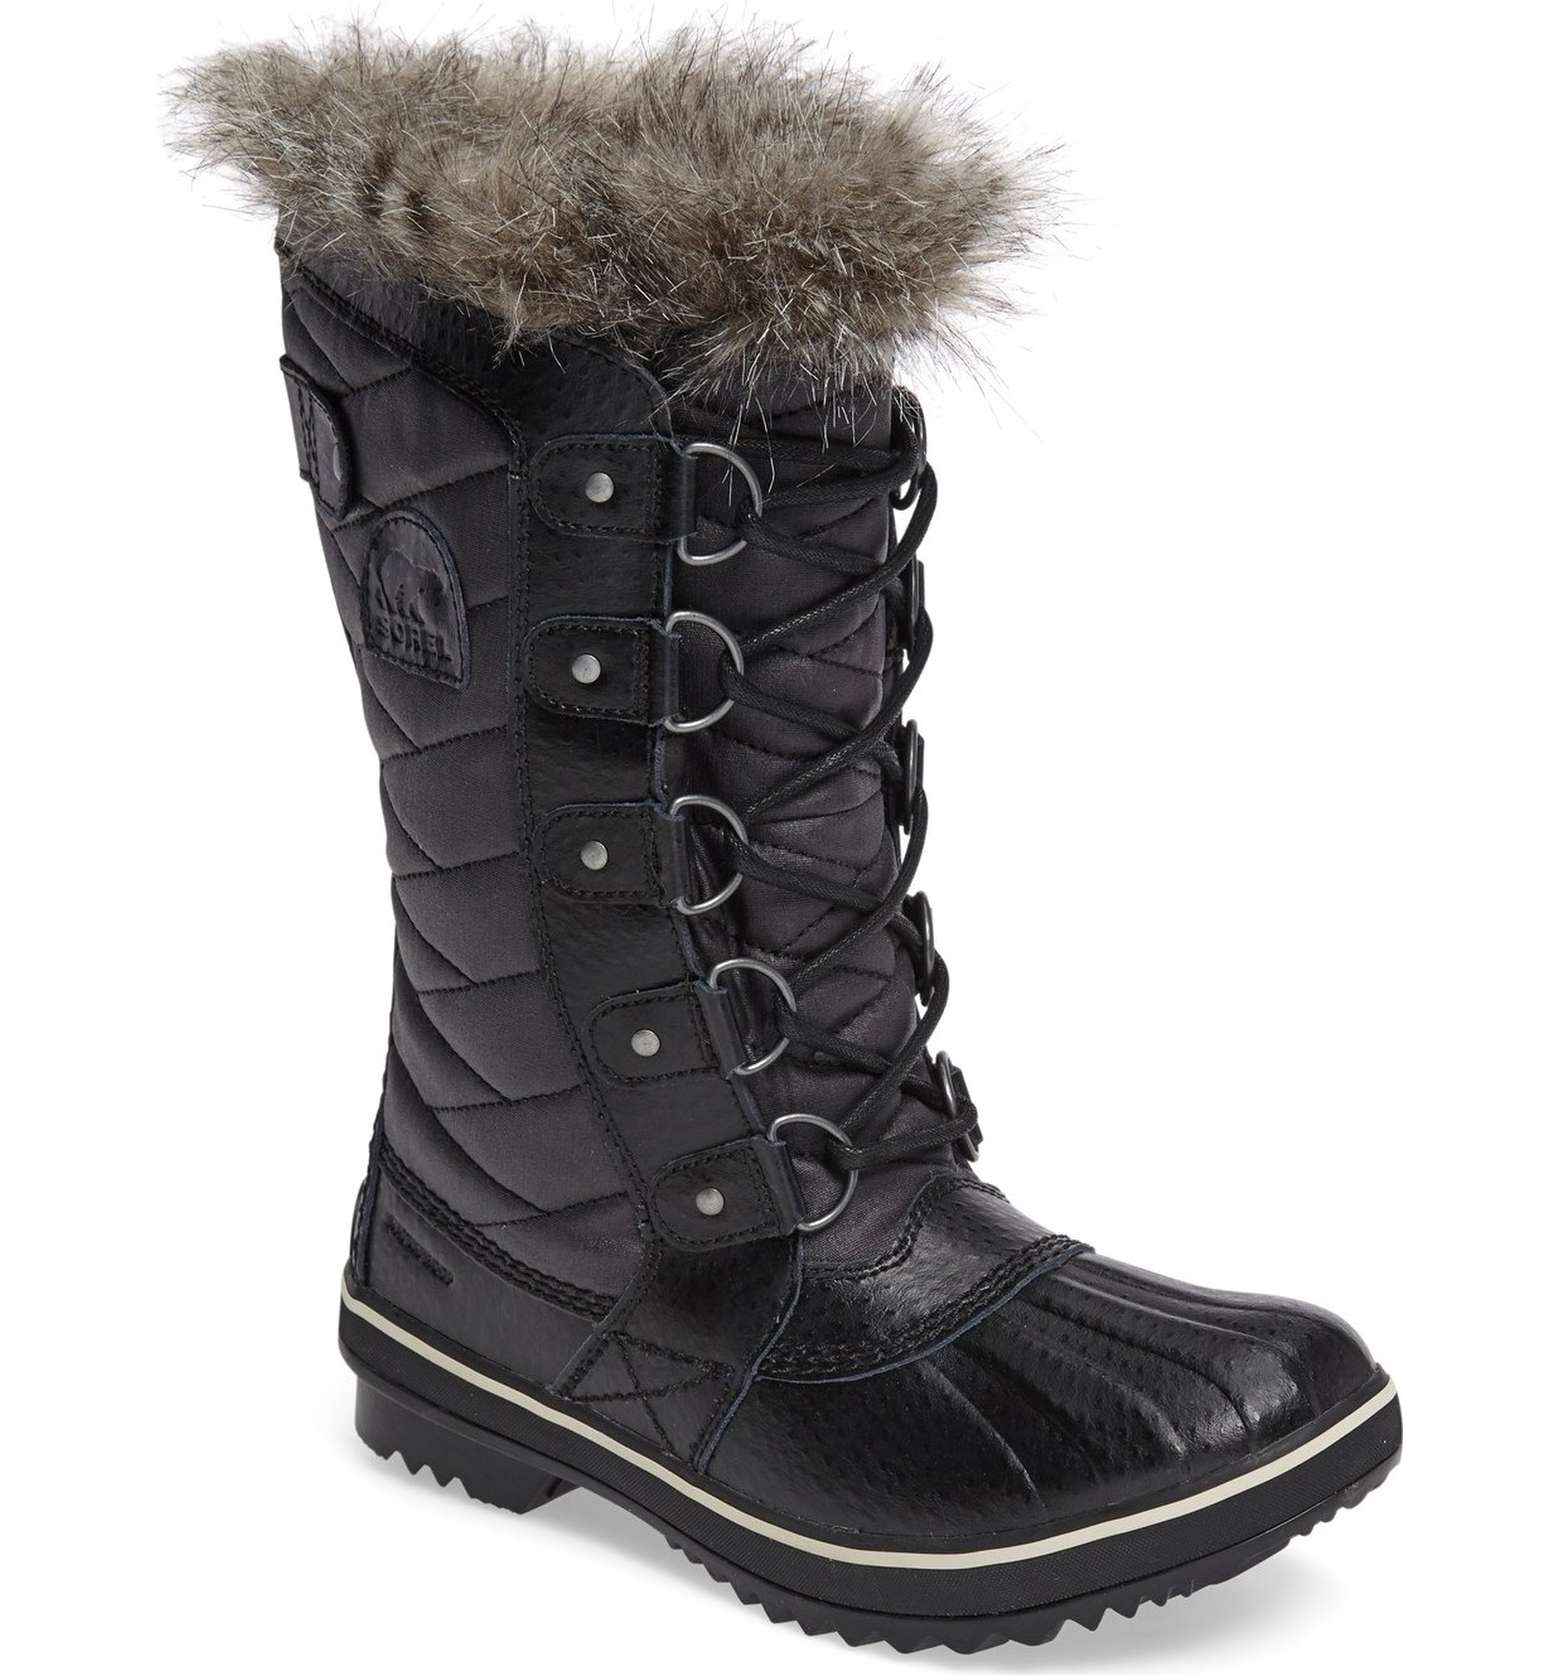 waterproof sorel